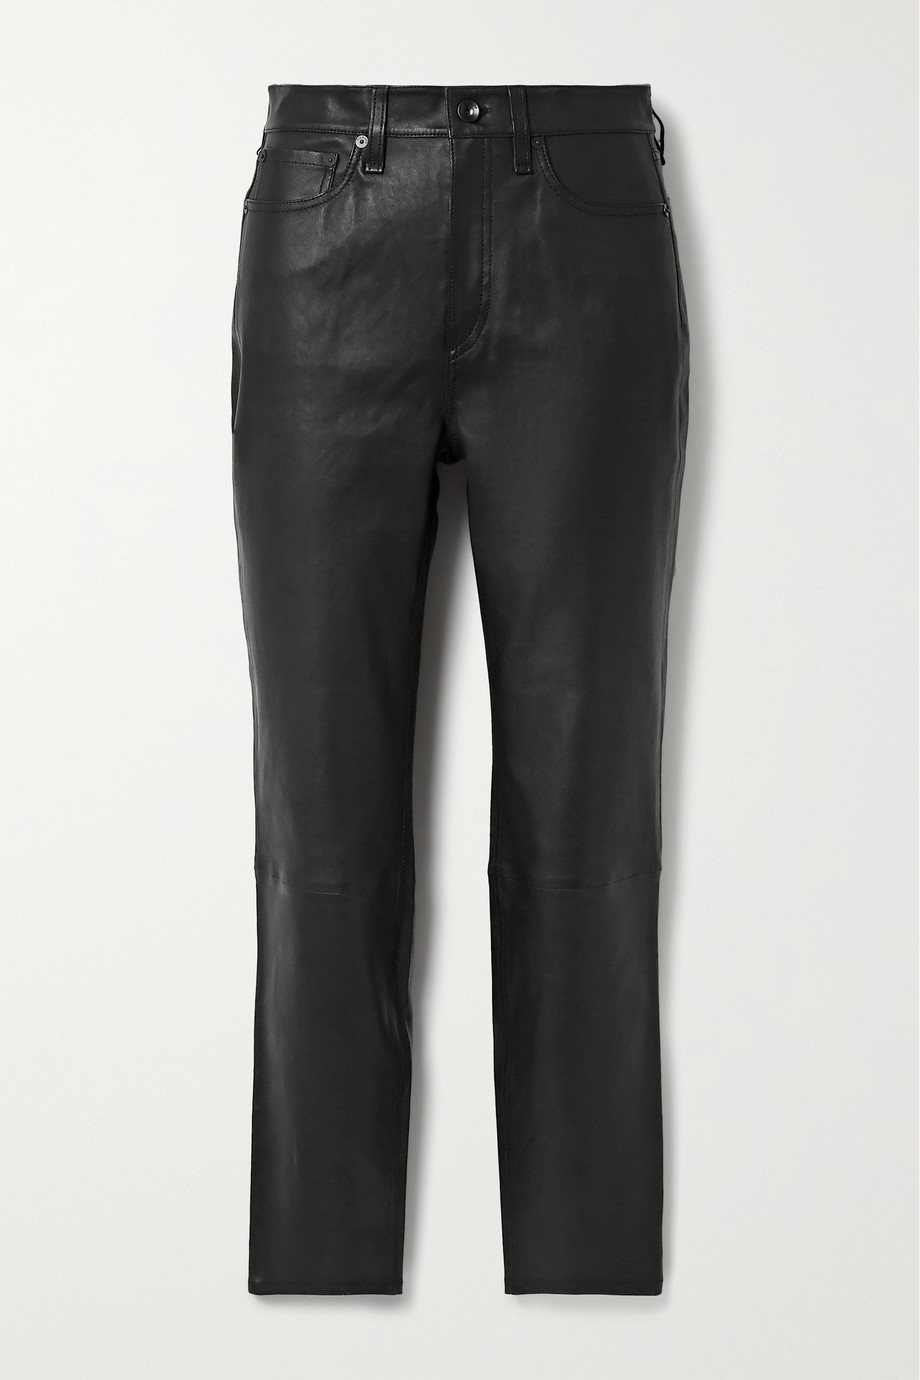 rag & bone Nina skinny leather pants